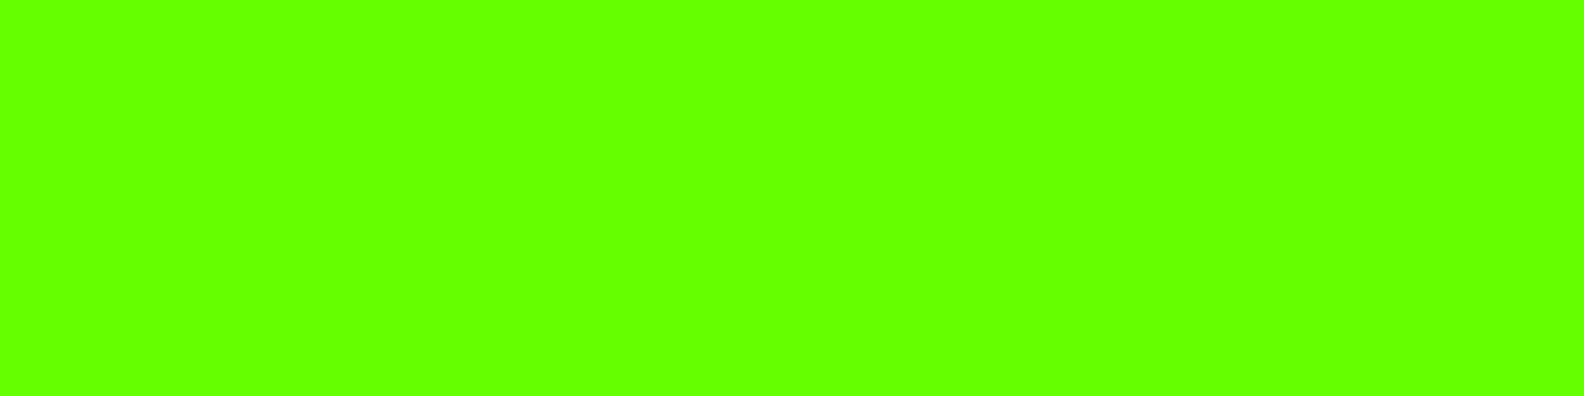 1584x396 Bright Green Solid Color Background